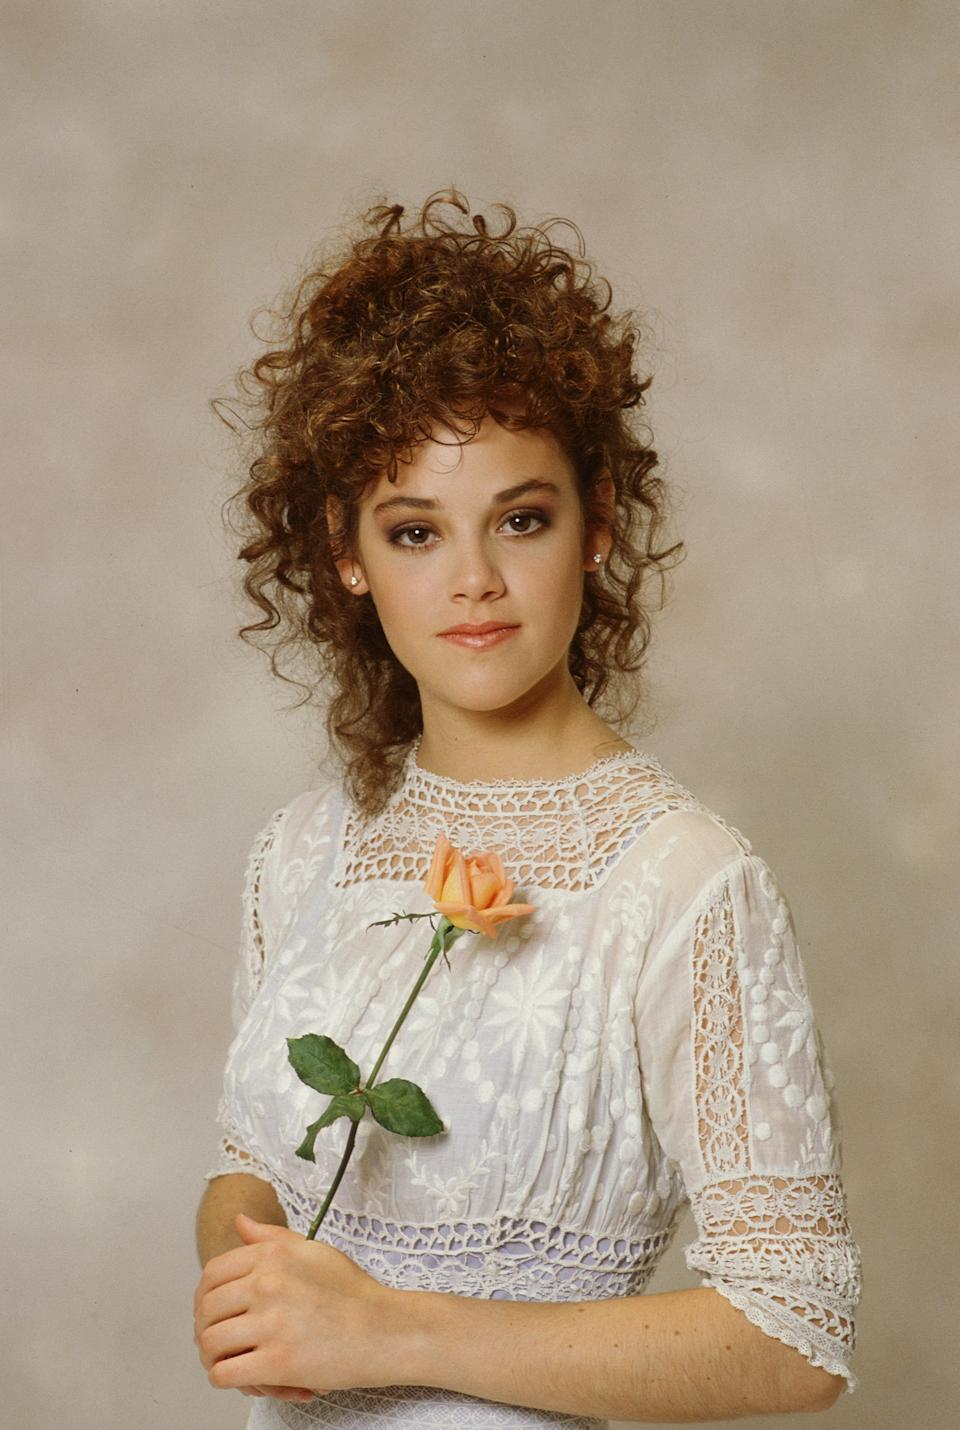 LOS ANGELES - JANUARY 1: MY SISTER SAM cast member Rebecca Schaeffer, seen here out of character. Image dated 1987. (Photo by CBS via Getty Images)